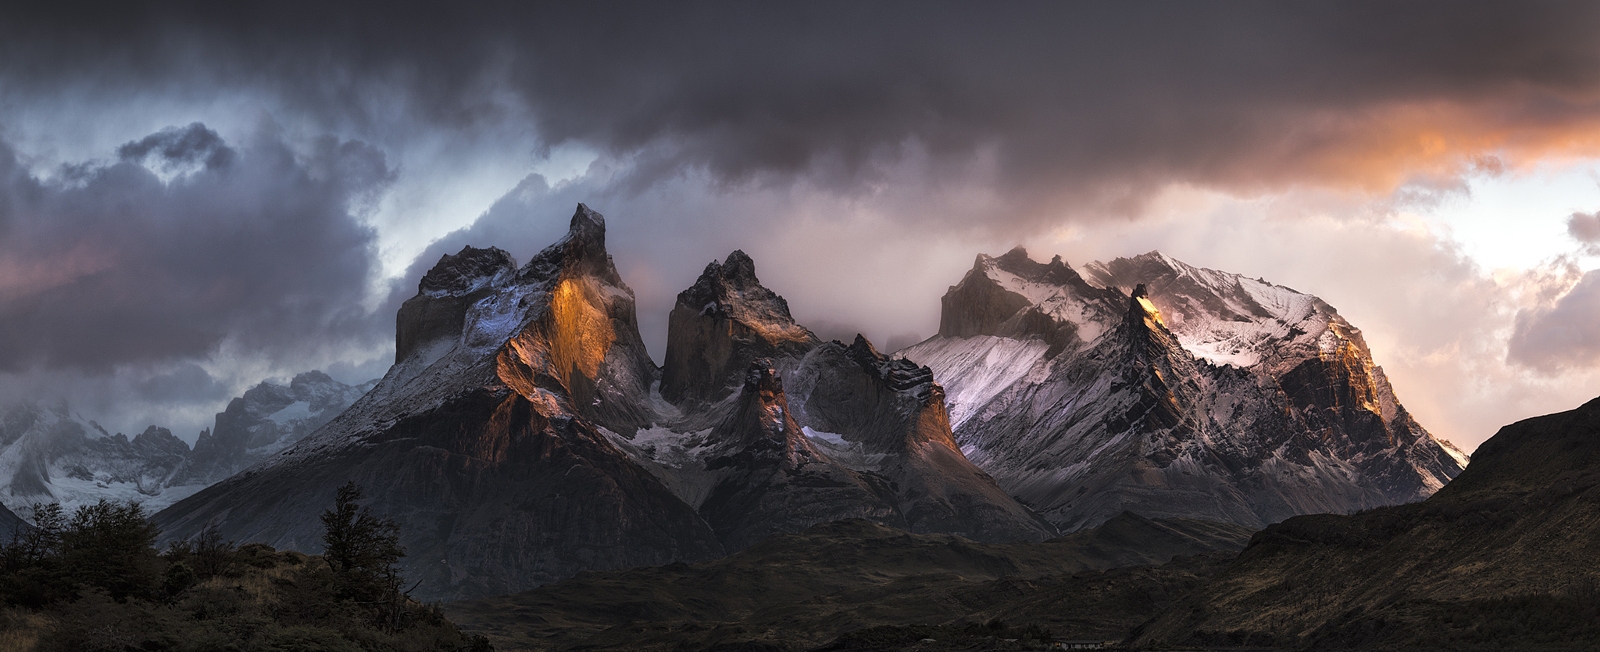 This Week in Popular: Top 25 Photos on 500px This Week (49)